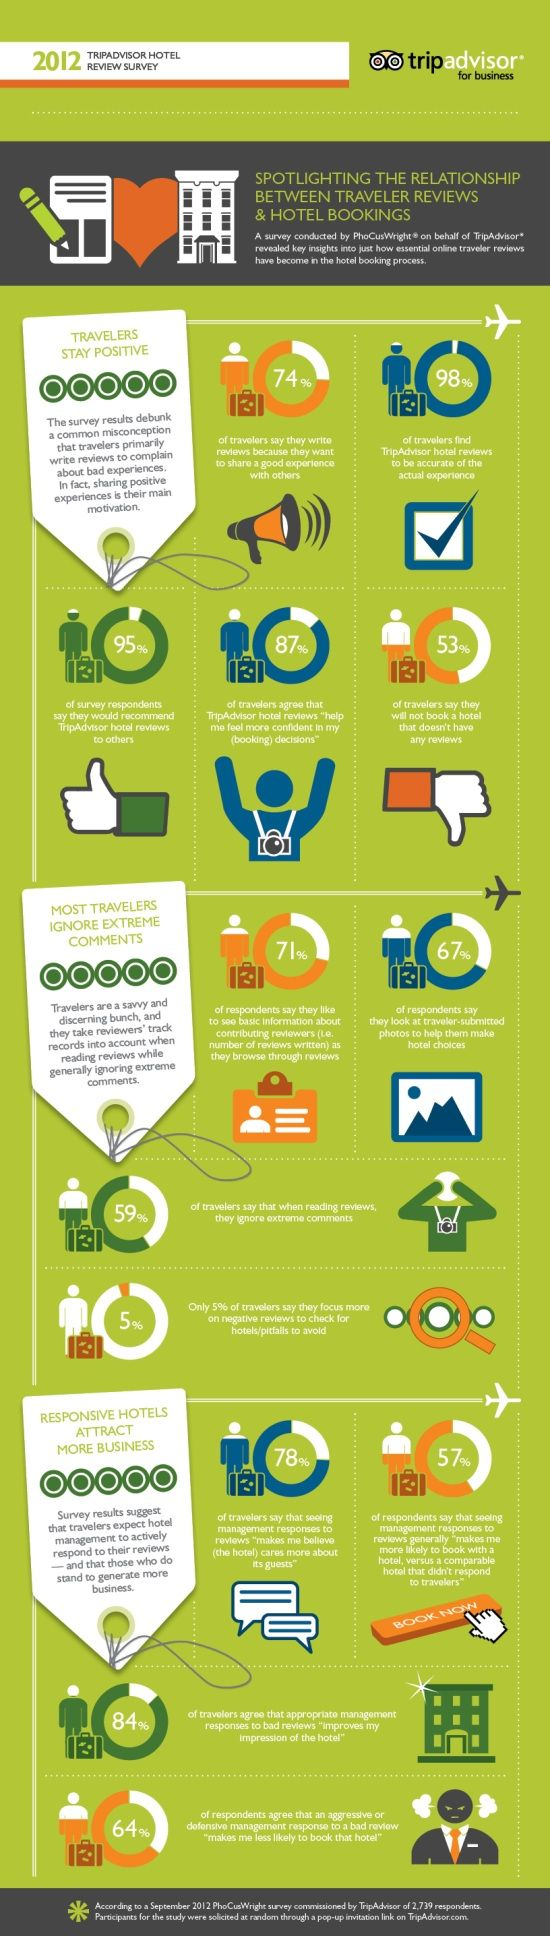 the relationship between traveller reviews and hotel bookings - negative reviews - tripadvisor infographic